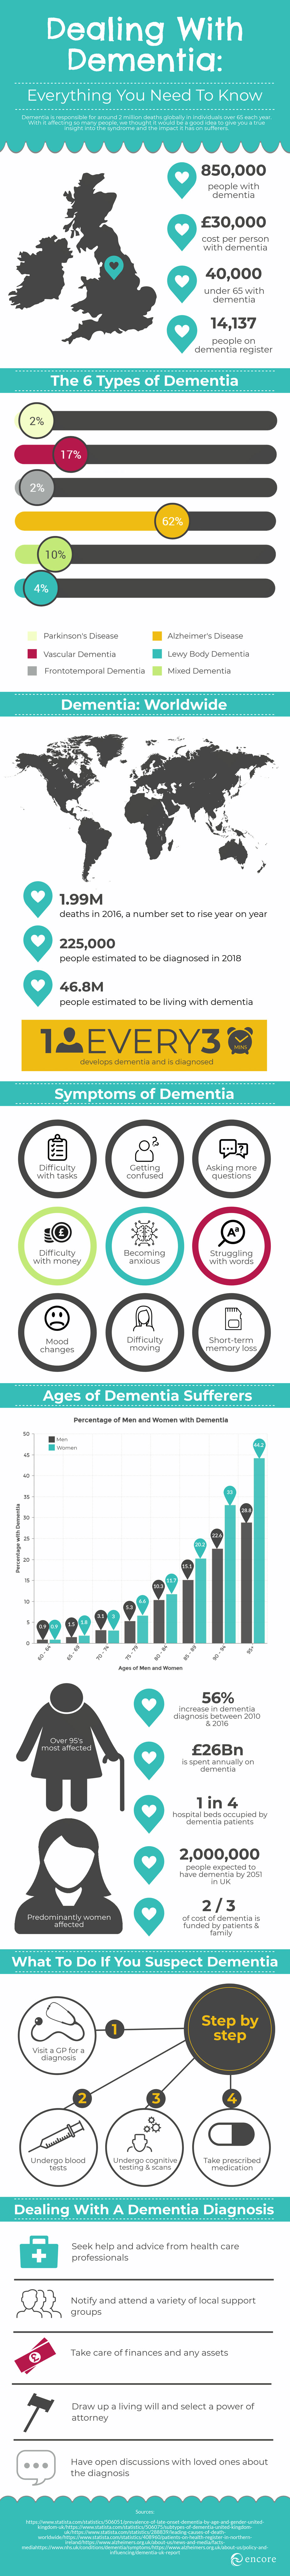 dealing with dementia infographic